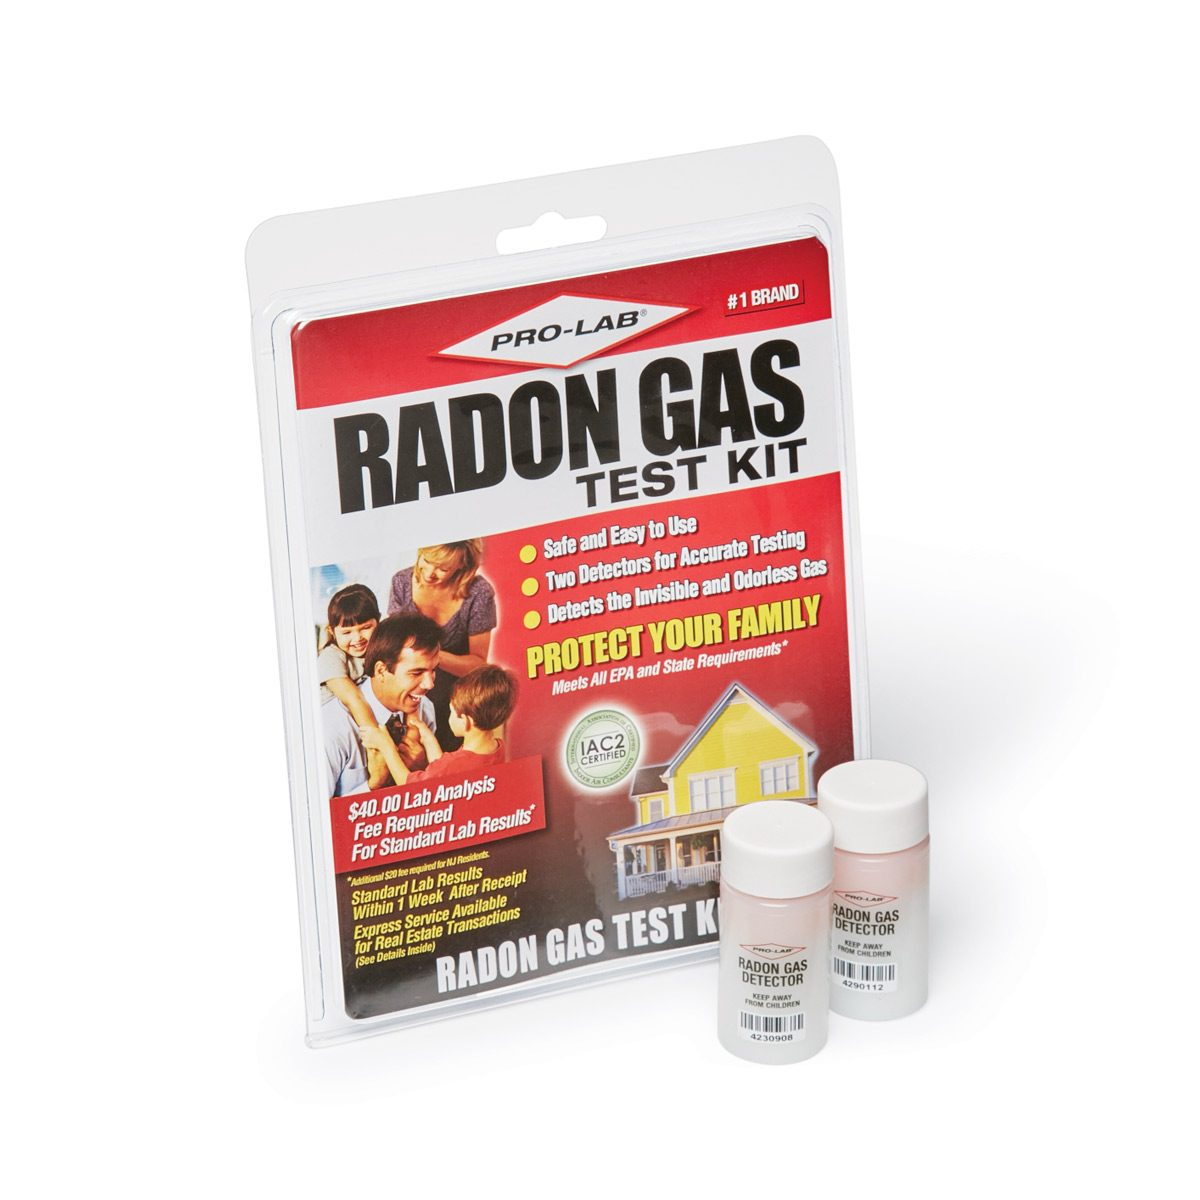 How do you test for radon?